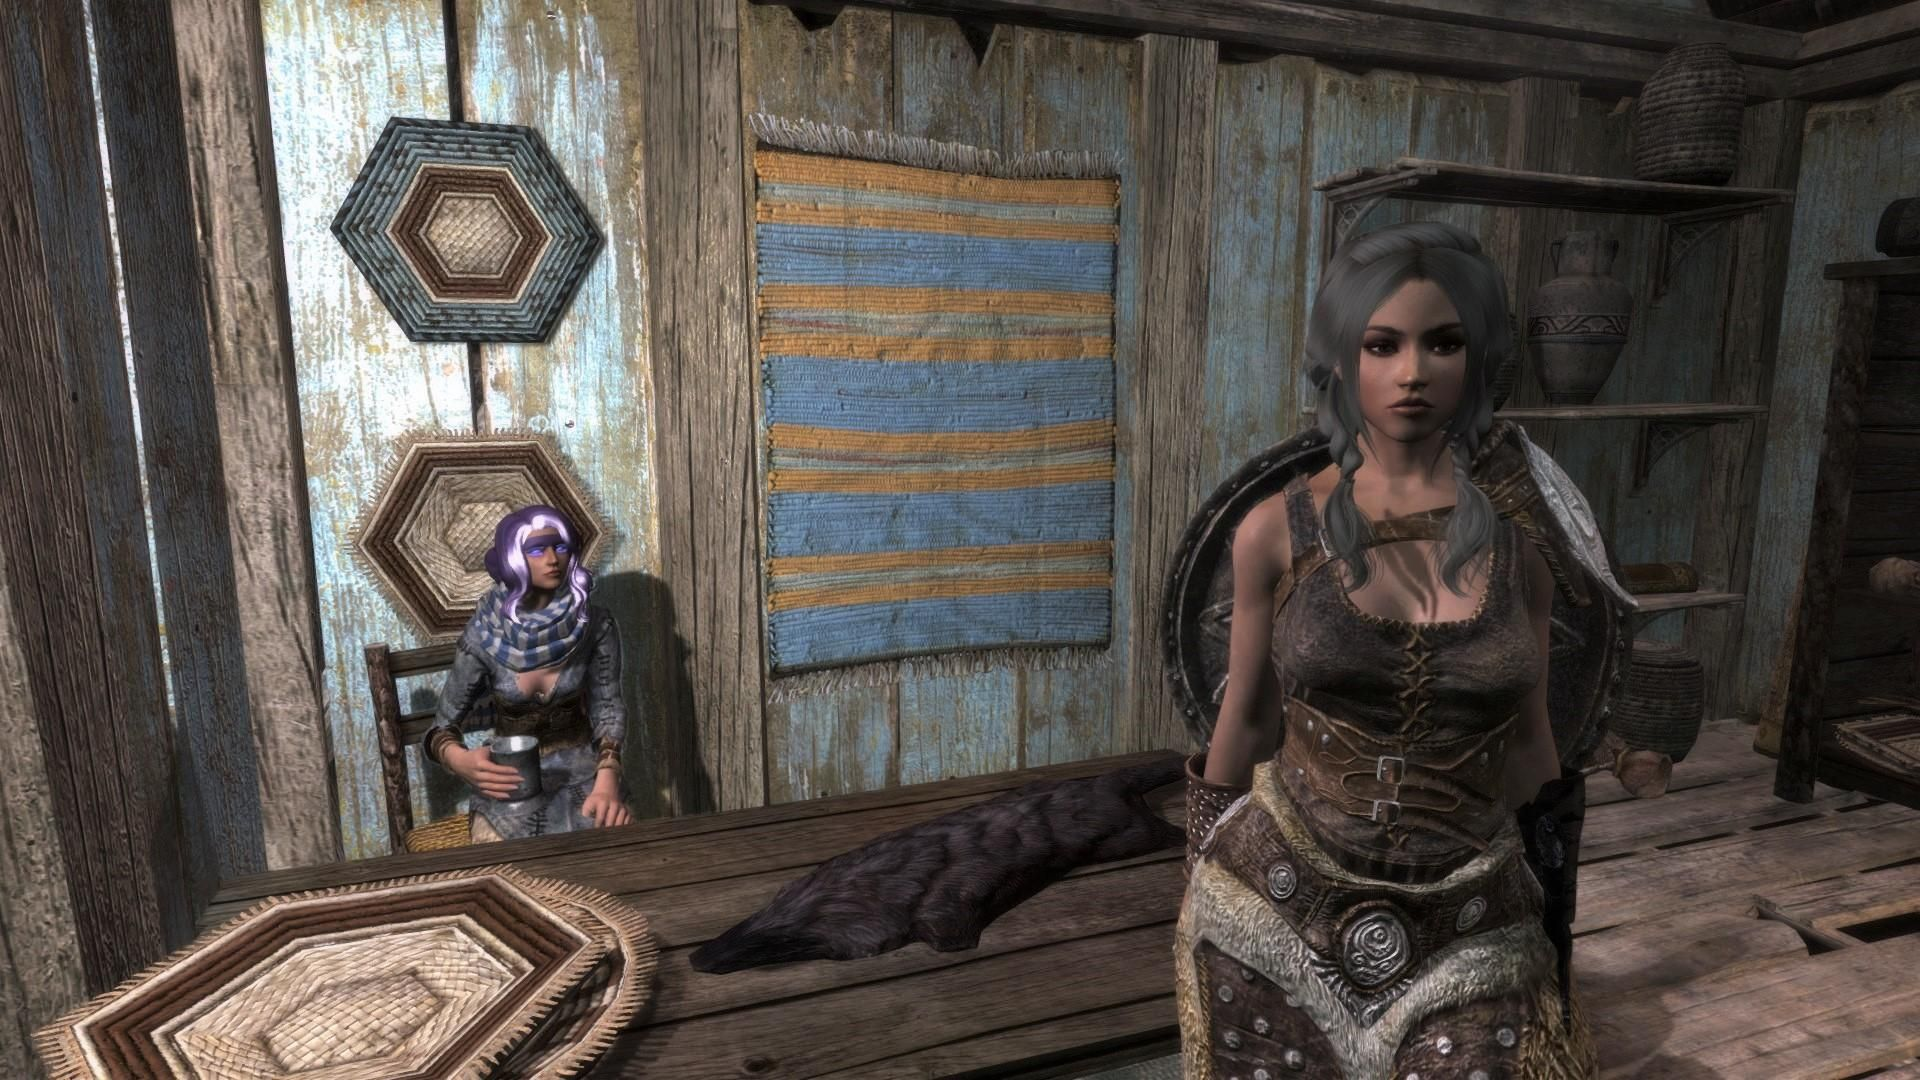 I dont think Ysolda is too happy about me taking her face    #games